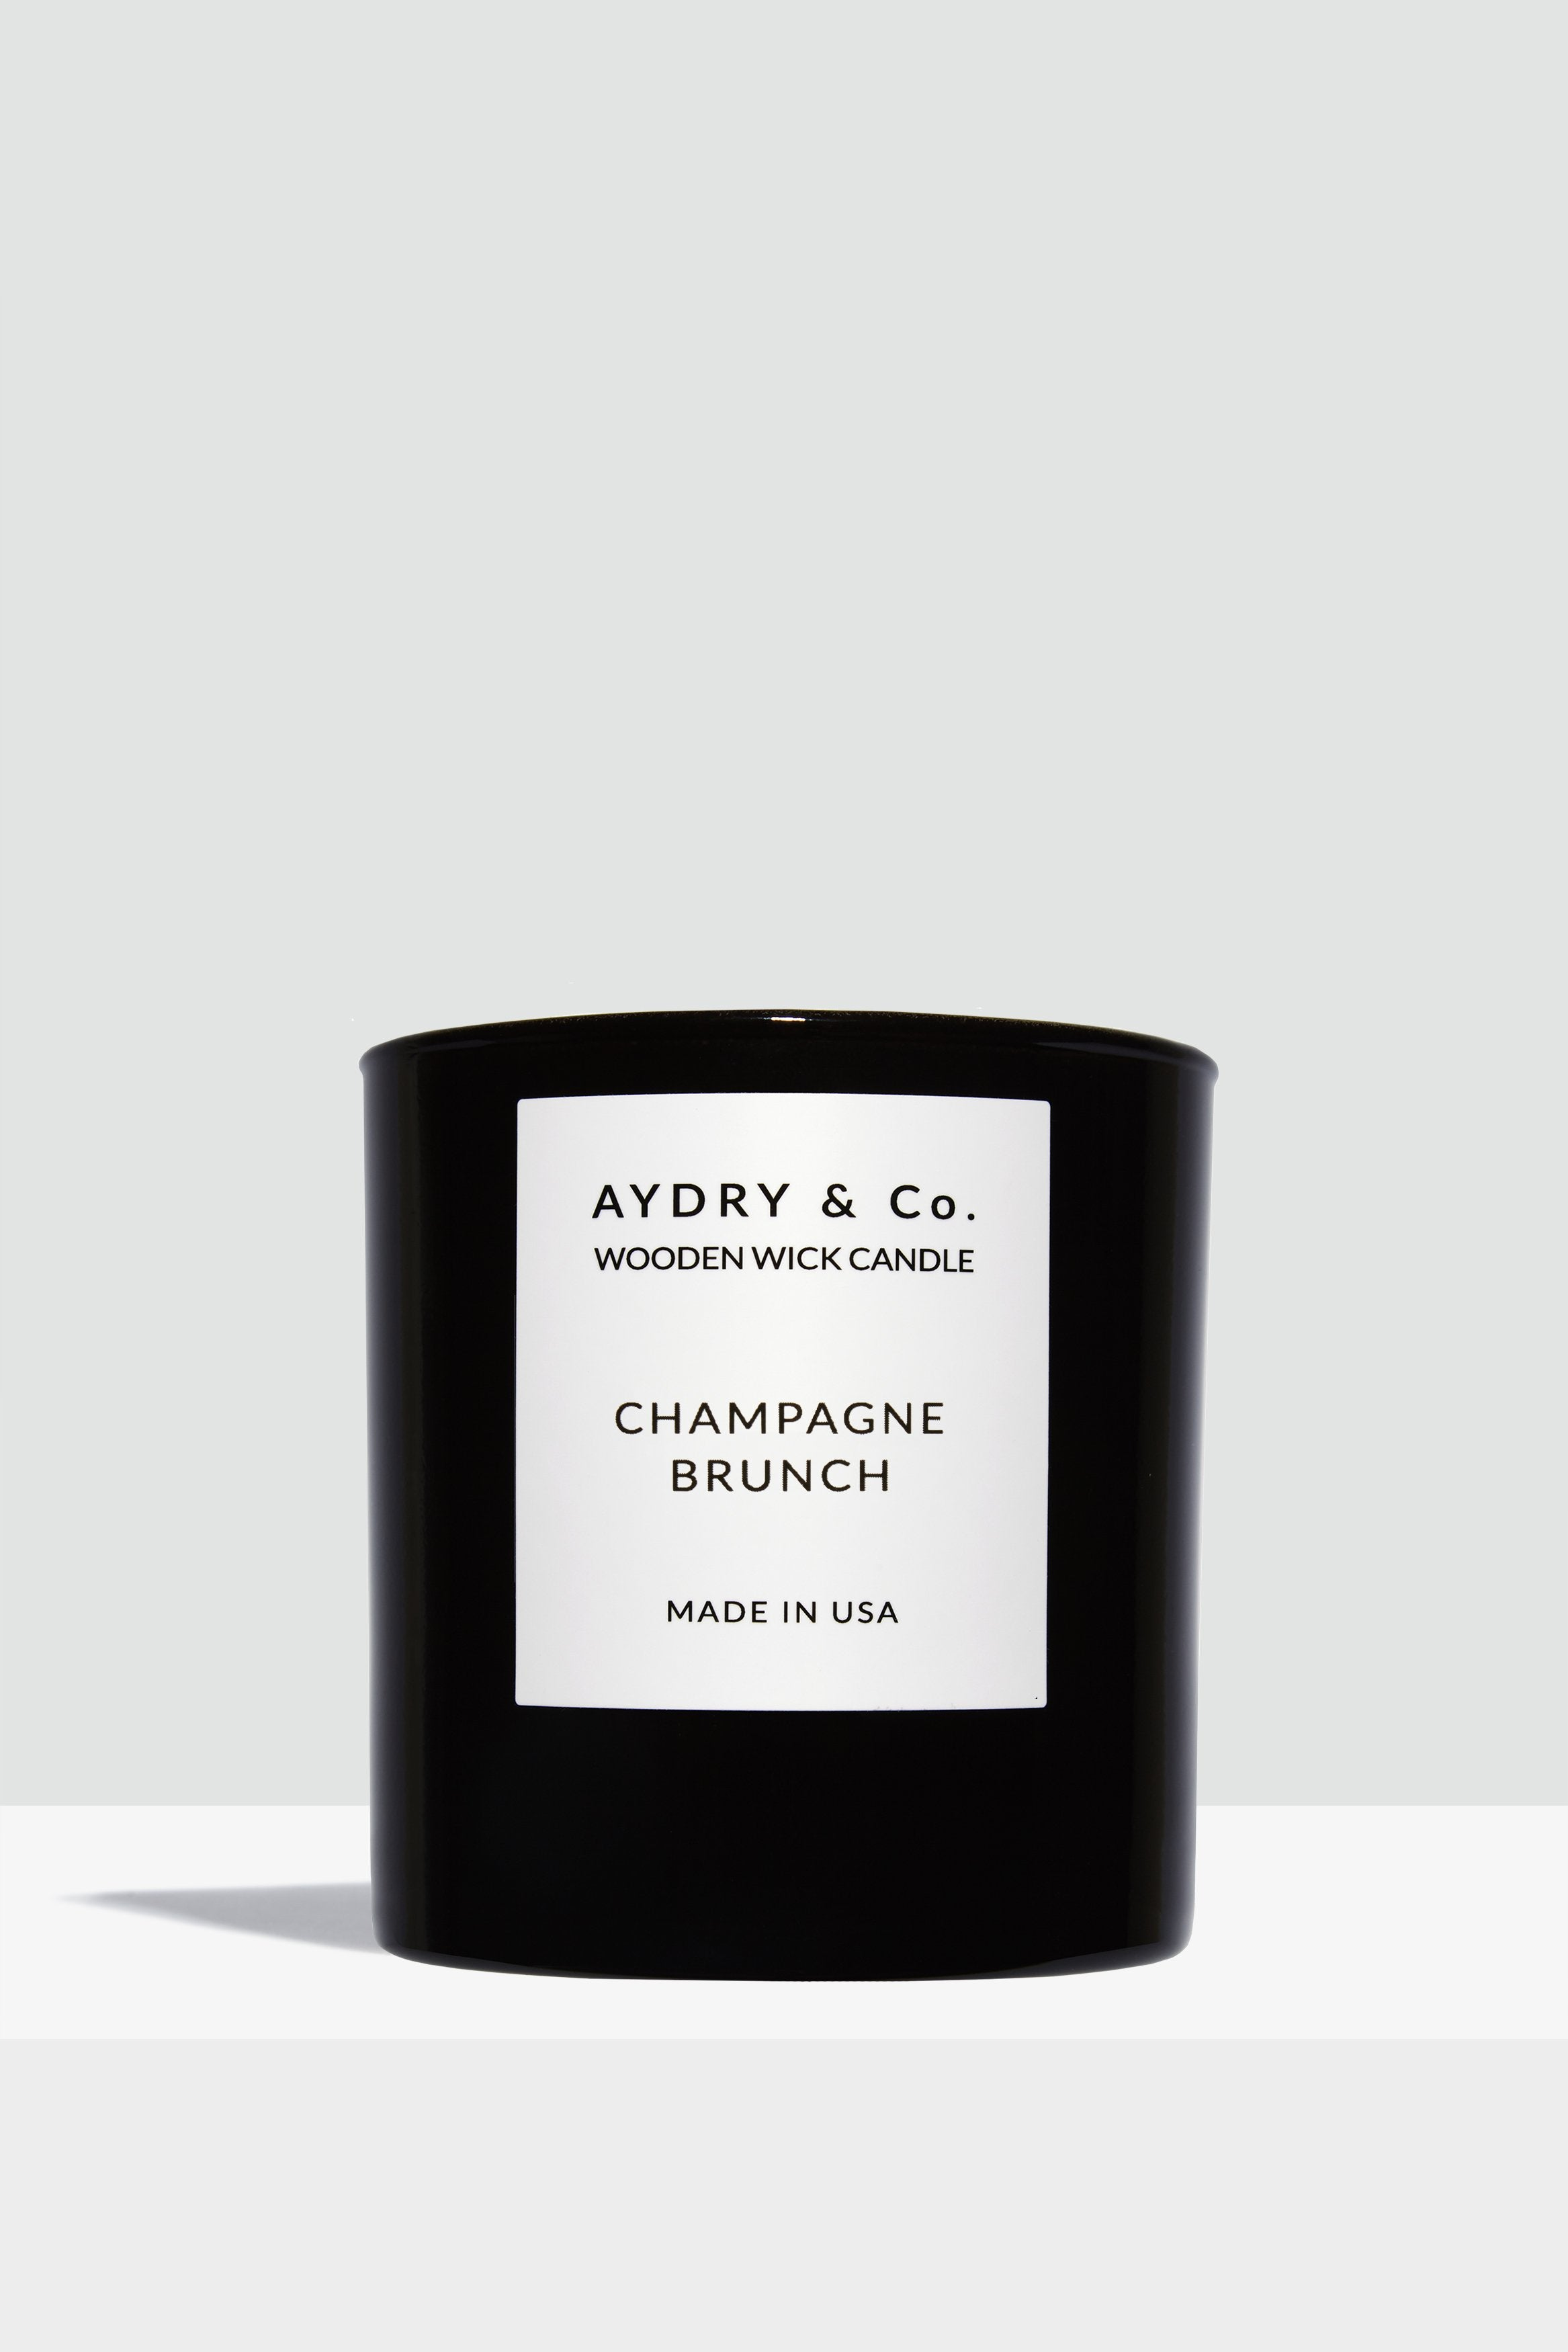 Champagne Brunch Wooden Wick Candle - Hello Addie